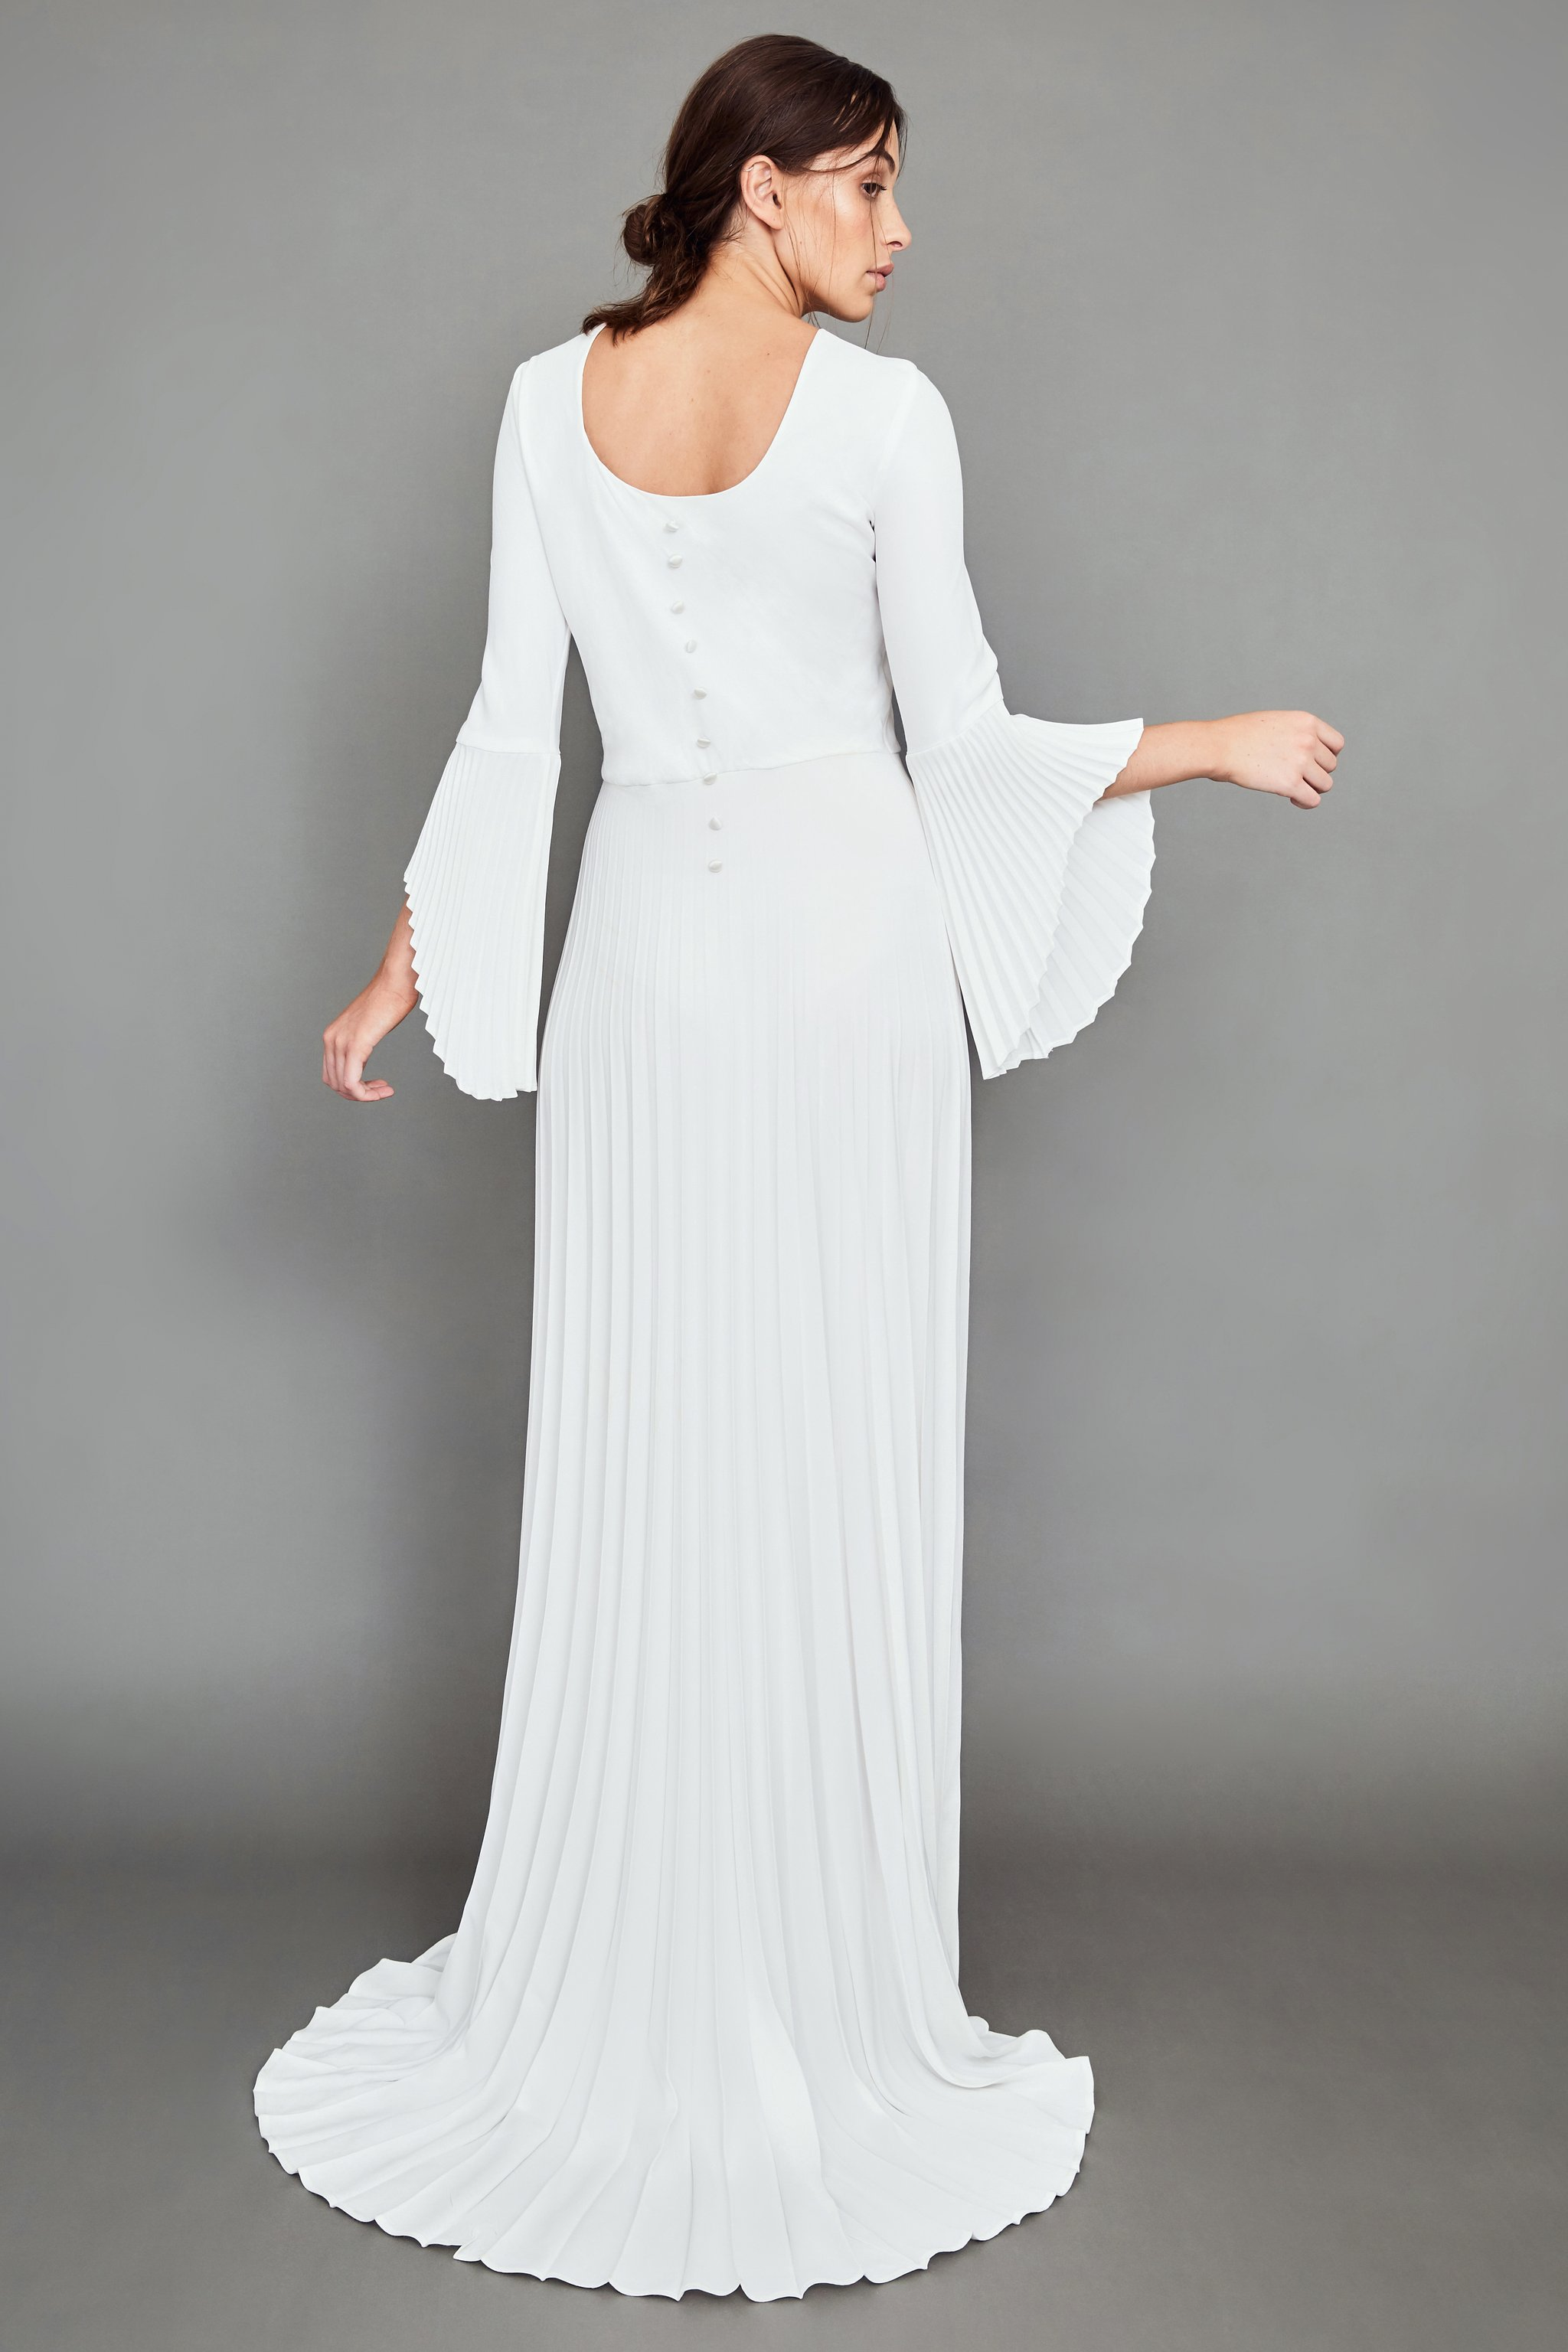 WHITE MEADOW BRIDAL Beautiful and Rare Pleated Dress | Wedding Dresses under $3,000 | LOVE FIND CO. Bridal Dress Directory